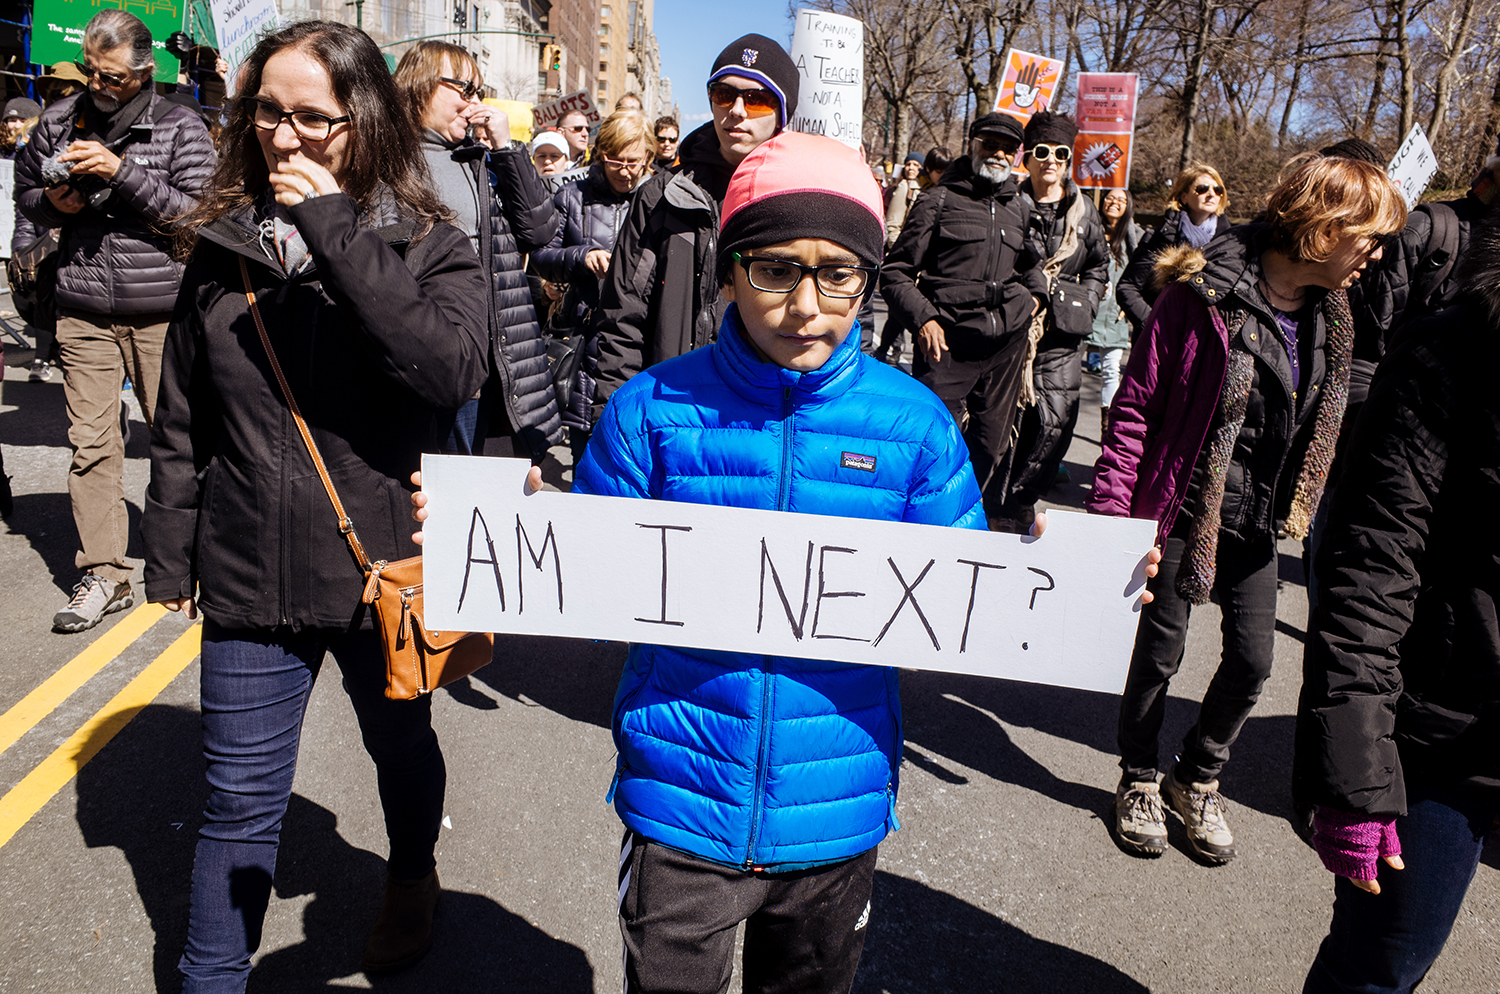 March for Our Lives participants of all ages continue to rally for gun control laws across the U.S. as more bills are proposed regarding the 2nd amendment. The movement was sparked by the Parkland High School shooting in Feb. 2018.